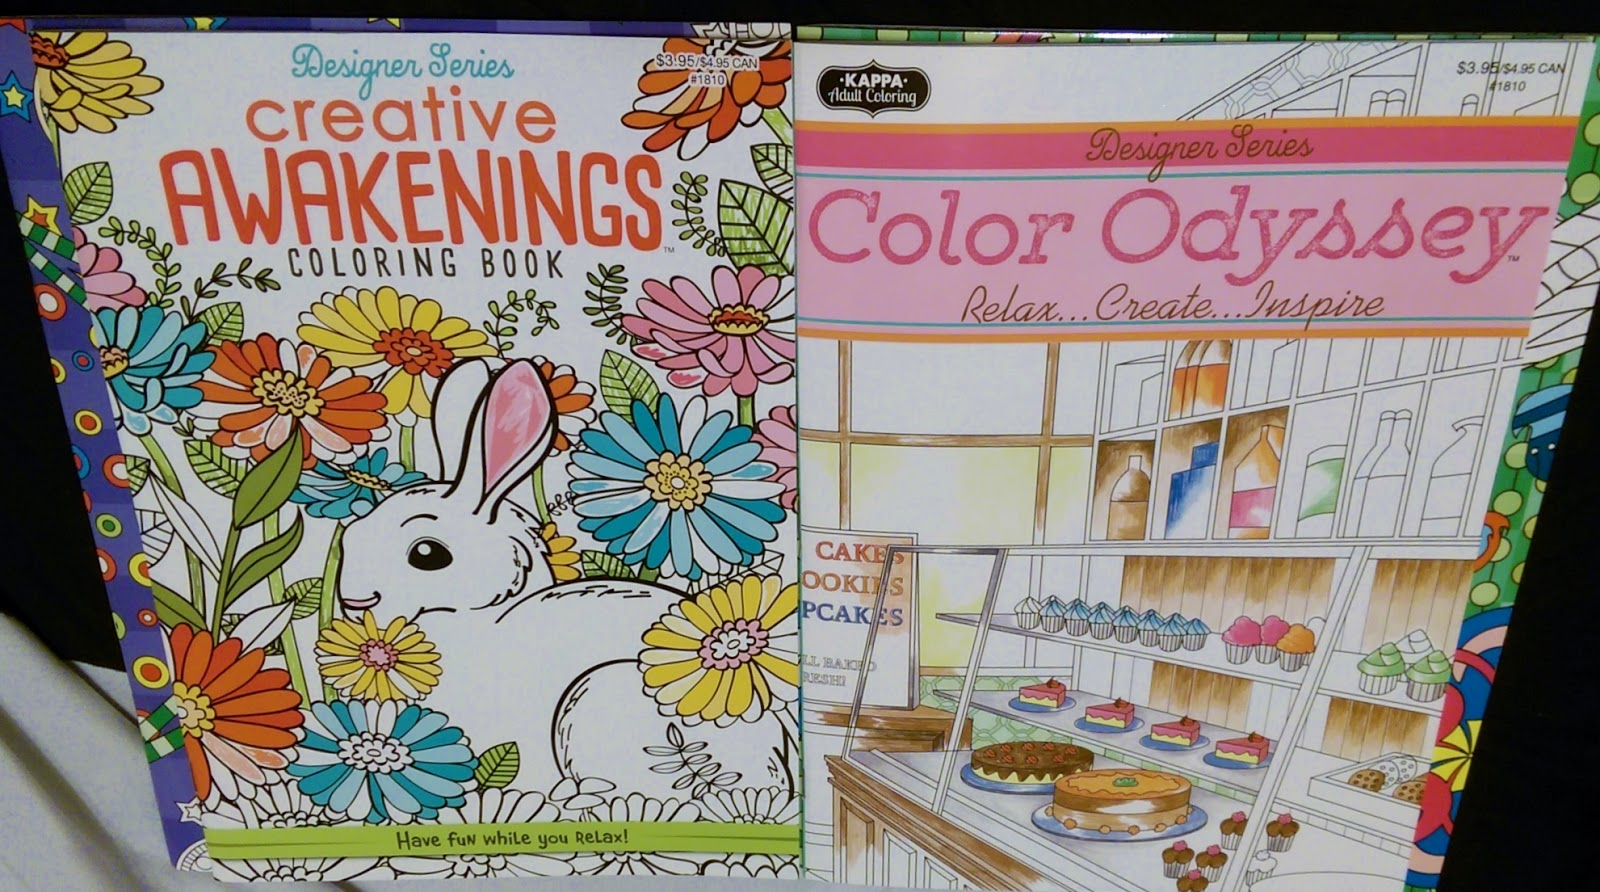 creative awakenings animals color odyssey detailed home designs wallpaper patterns objects take flight and serenity garden coloring books - Dollar Tree Coloring Books